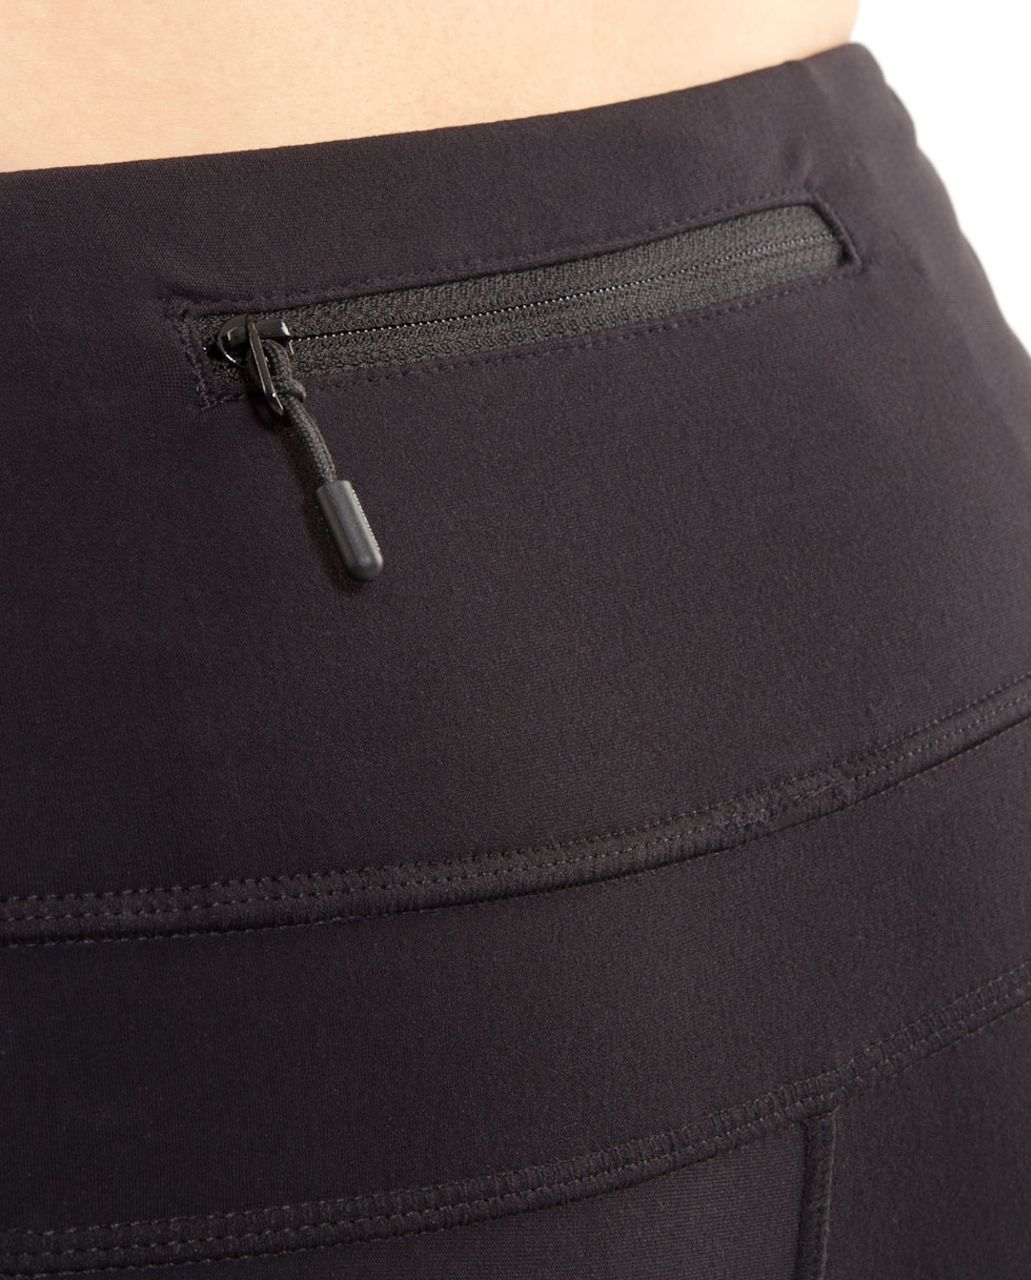 Lululemon Run:  Free Pant - Black